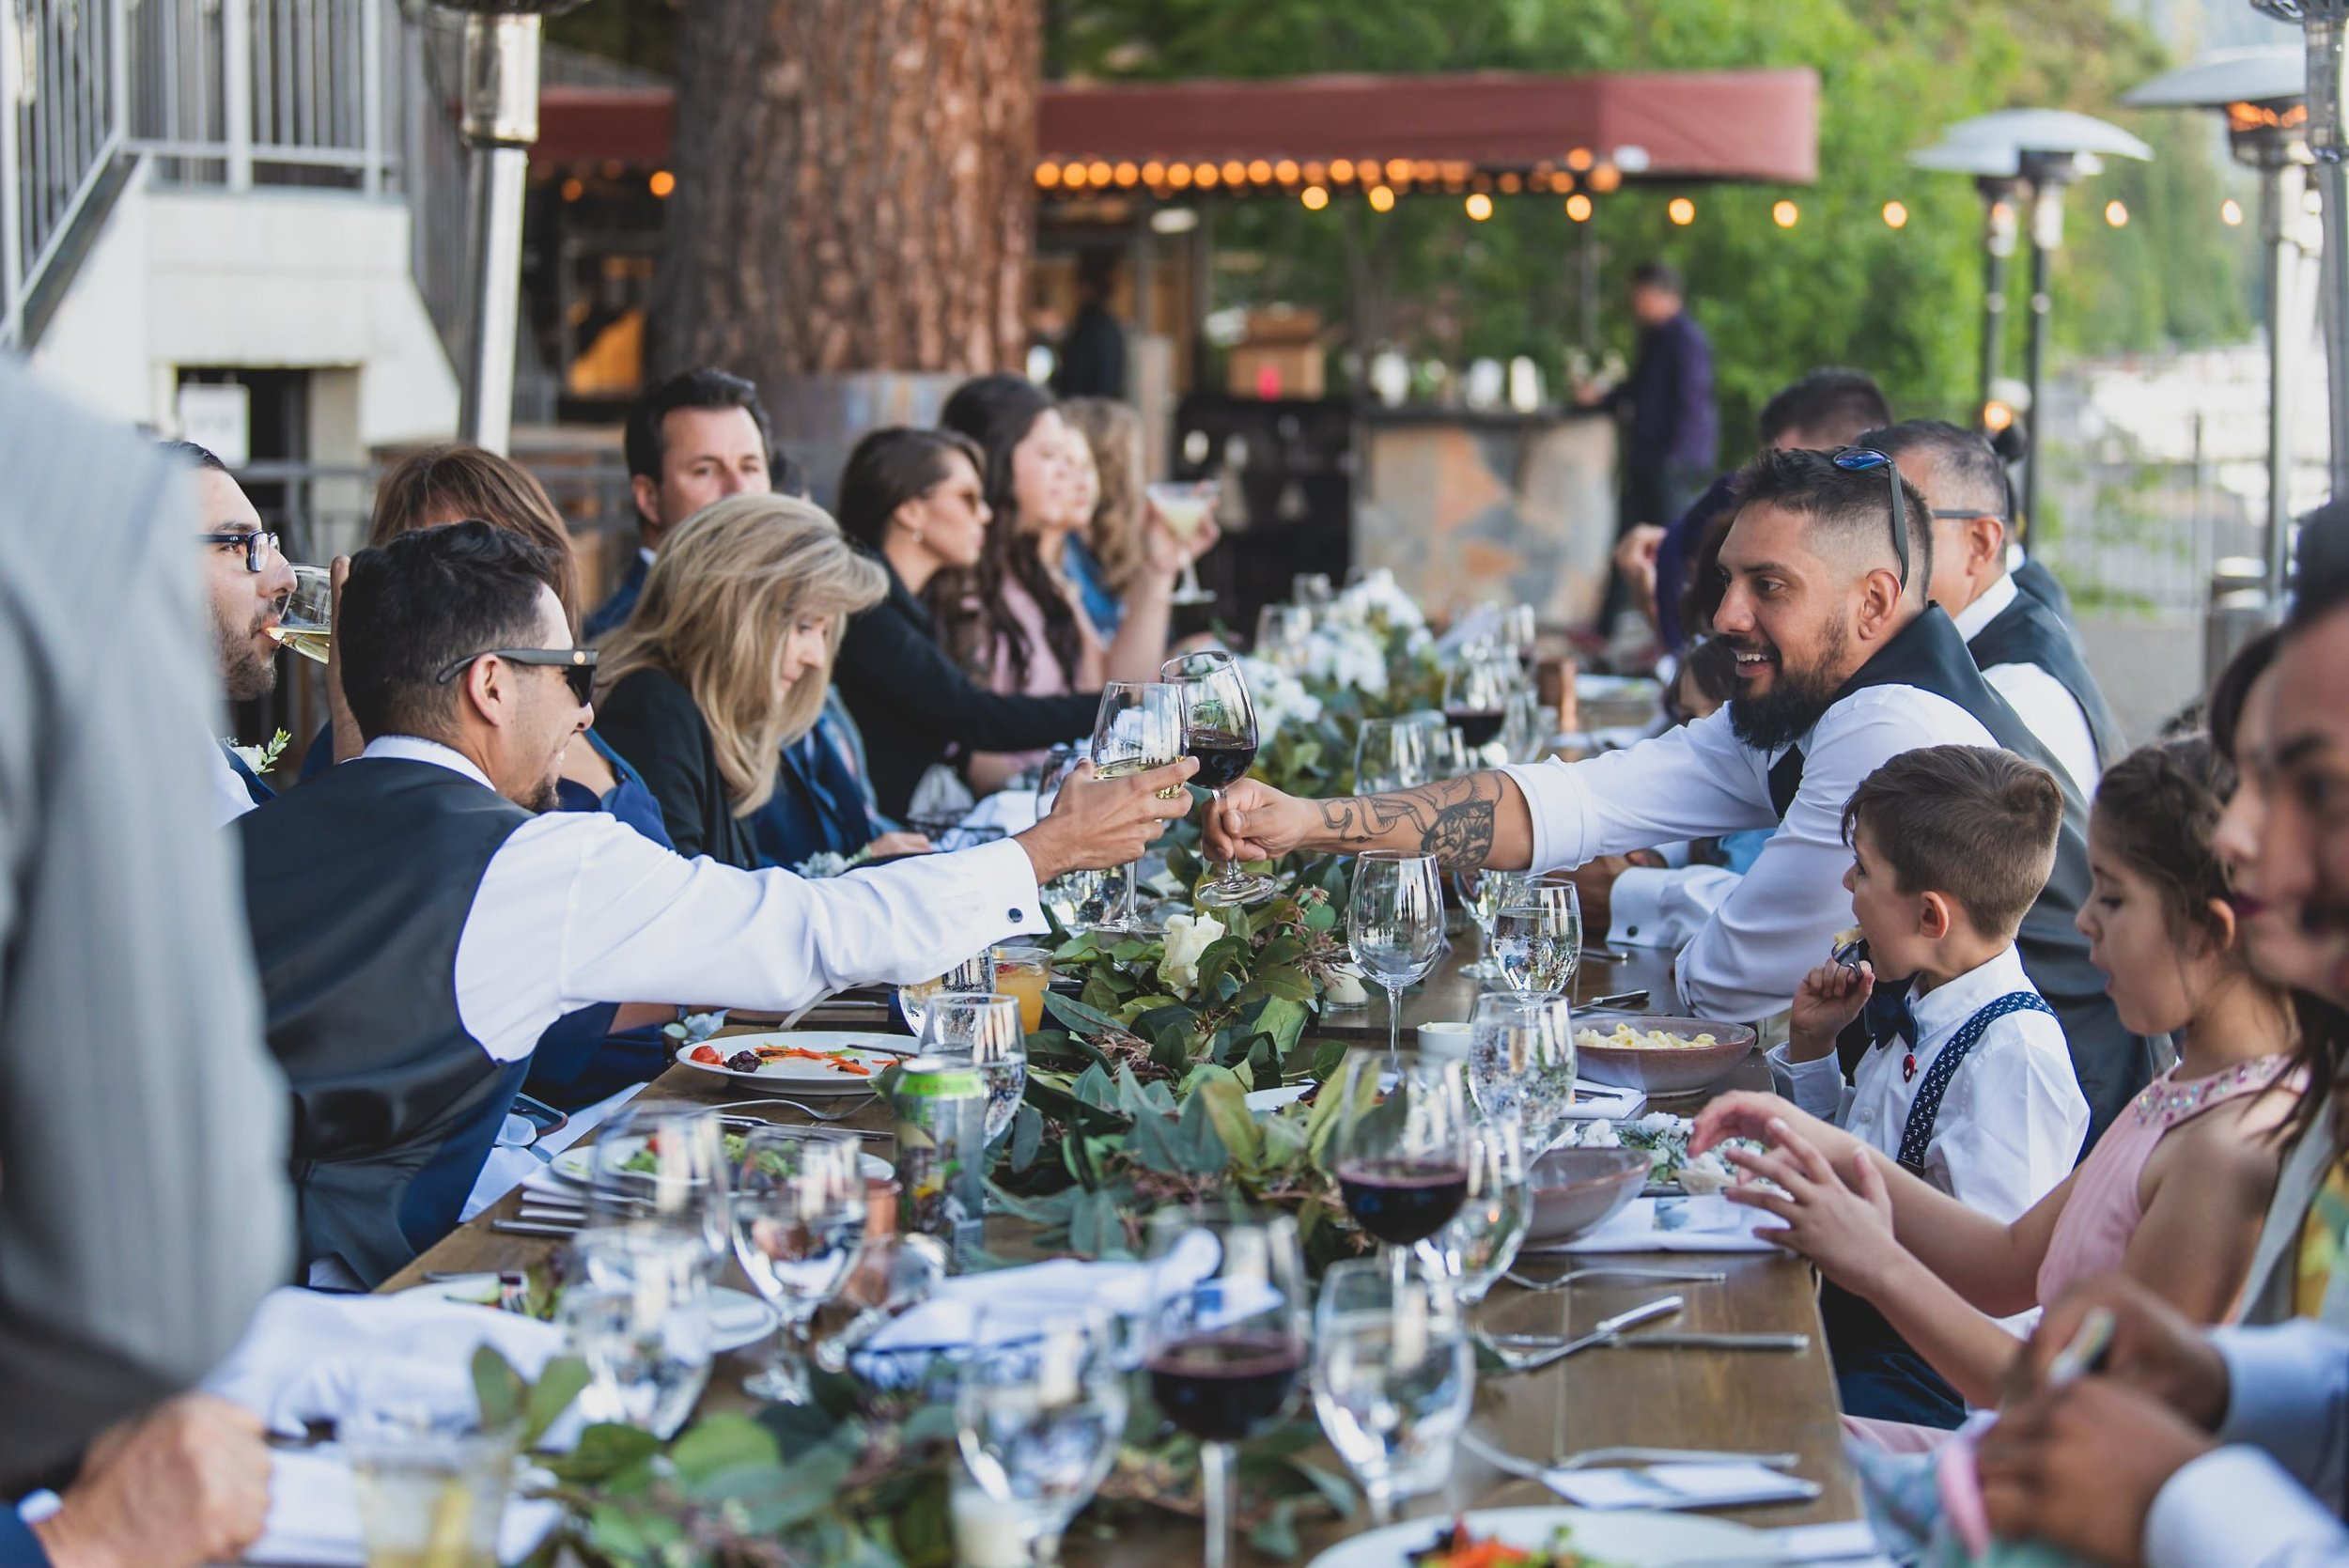 Wedding guests celebrate at an outdoor reception sitting at a long wooden table.